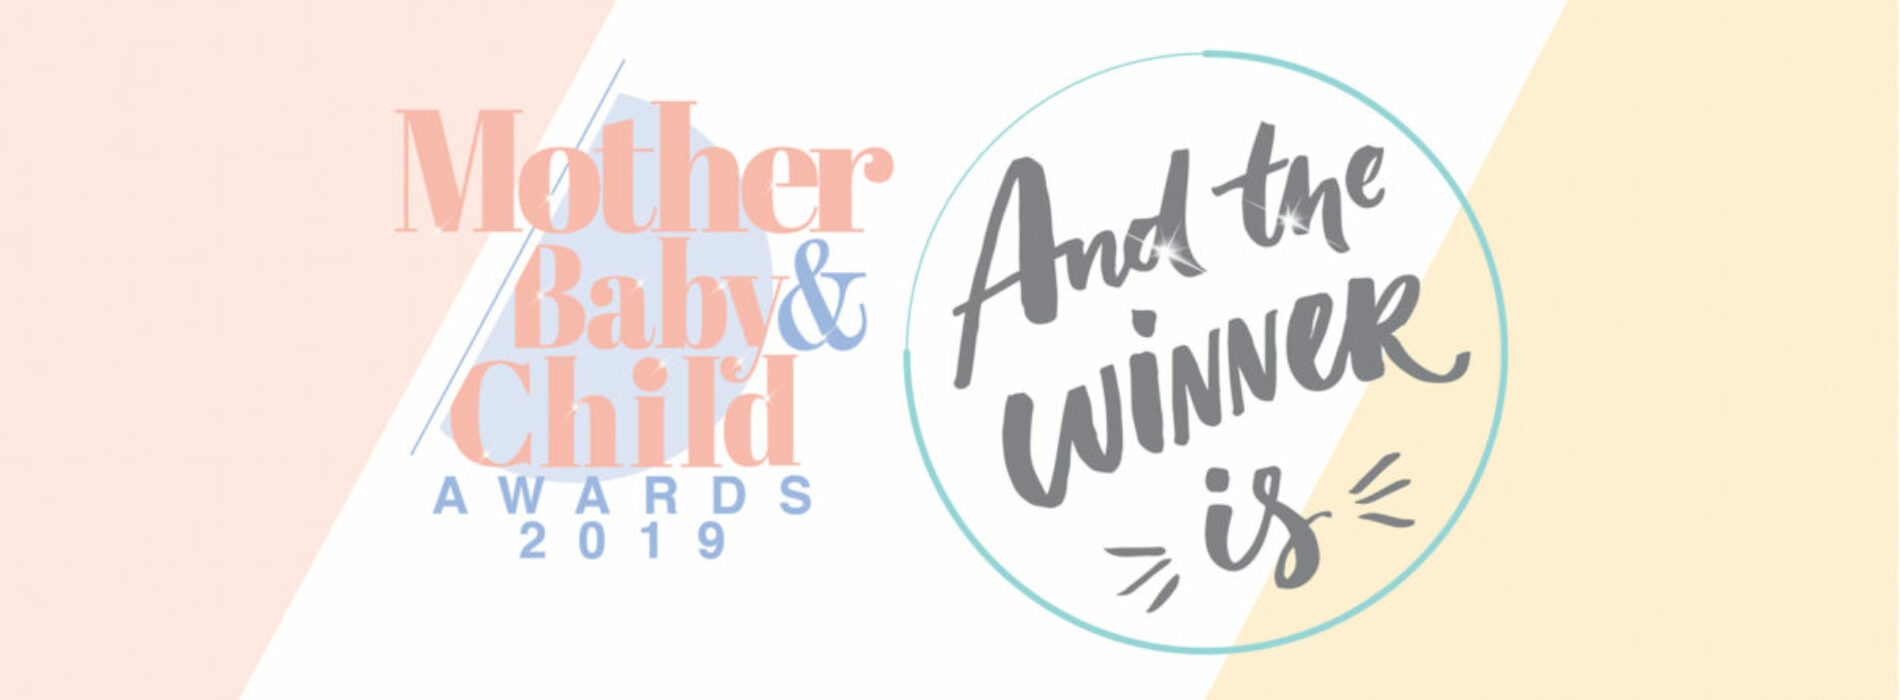 Mother, Baby & Child Awards 2019 Winners Announced